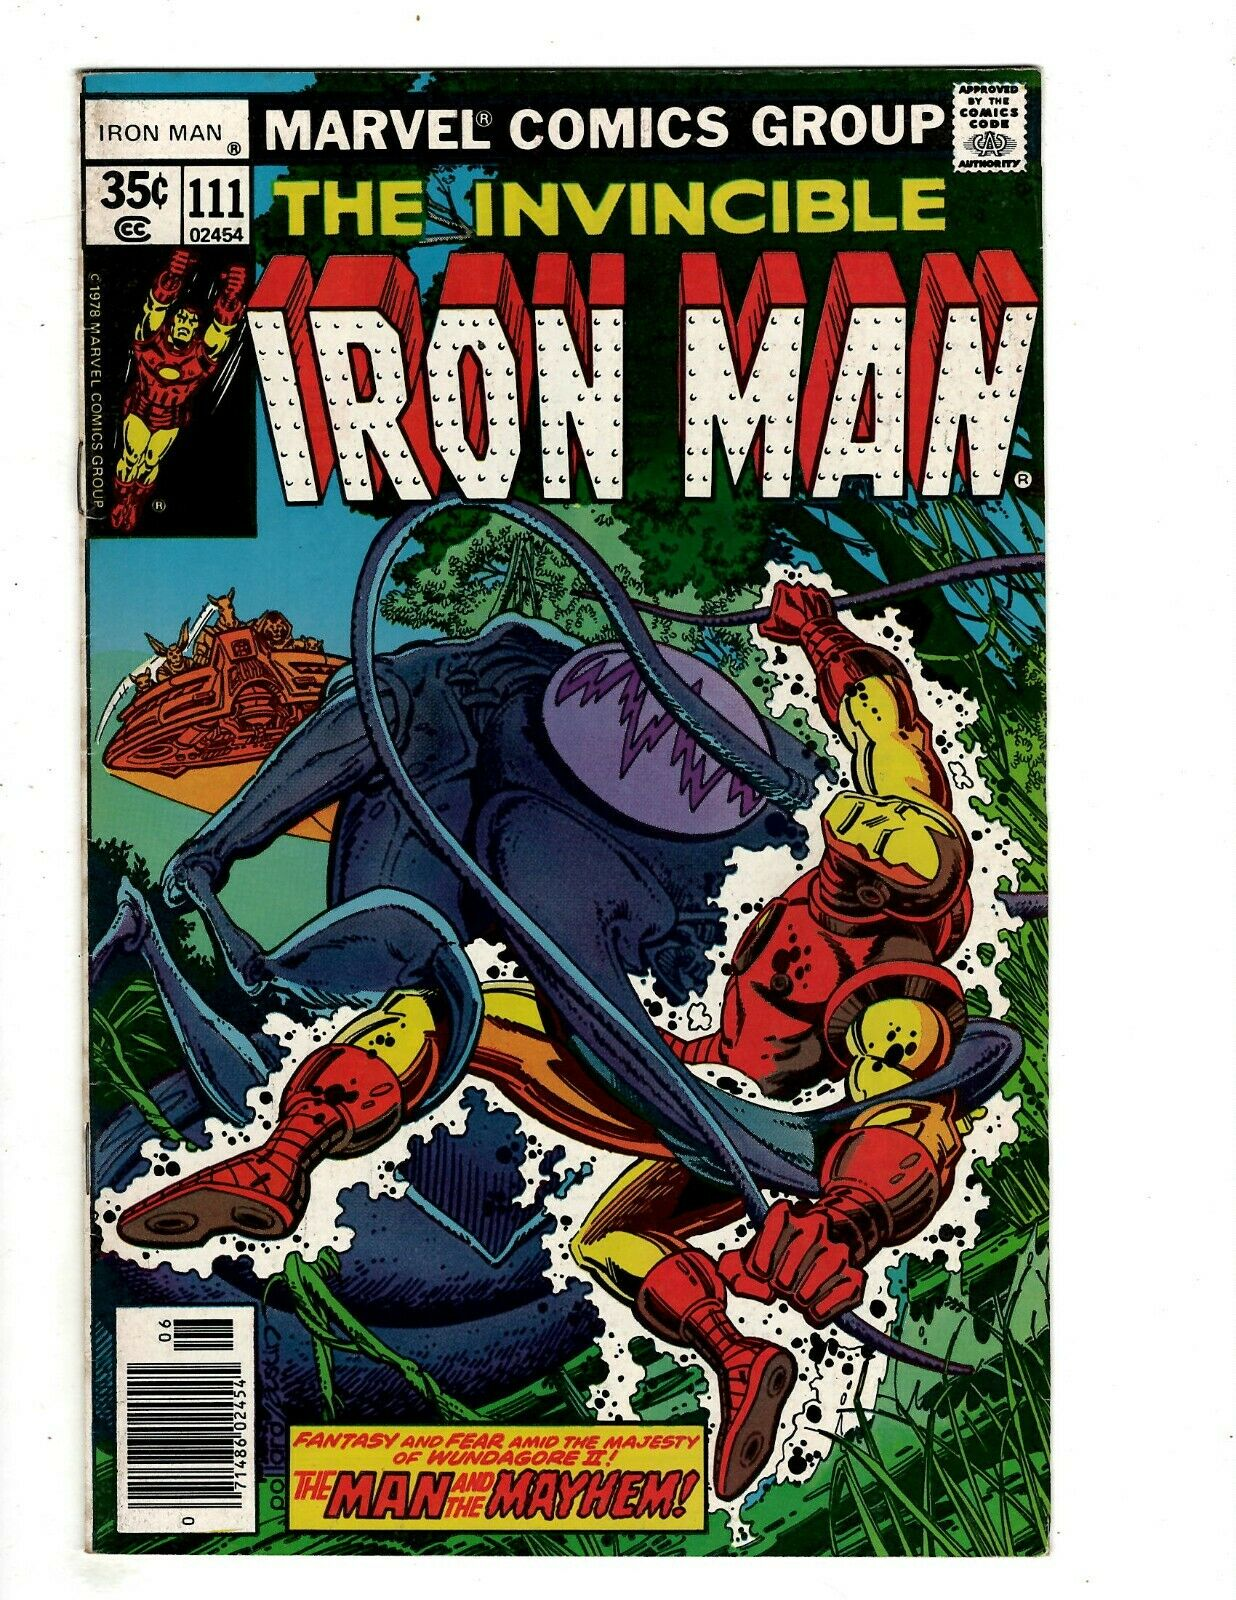 12 Iron Man Marvel Comics # 111 112 113 114 115 116 117 119 120 121 122 123 RB2